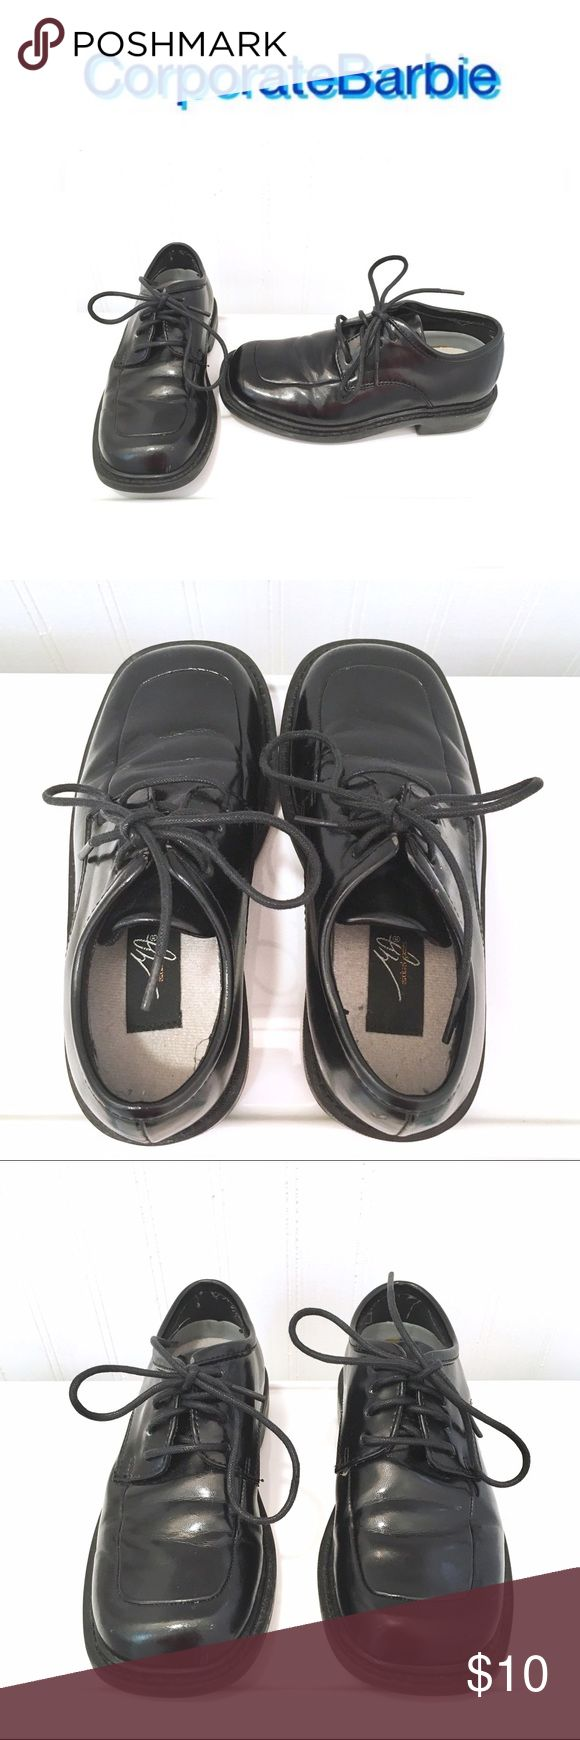 Boys Dress Shoes, Size 11.5 Boys dress shoes from Michael James. Black leather. Size 11.5. Worn to two weddings and still in great condition. Shoes Dress Shoes